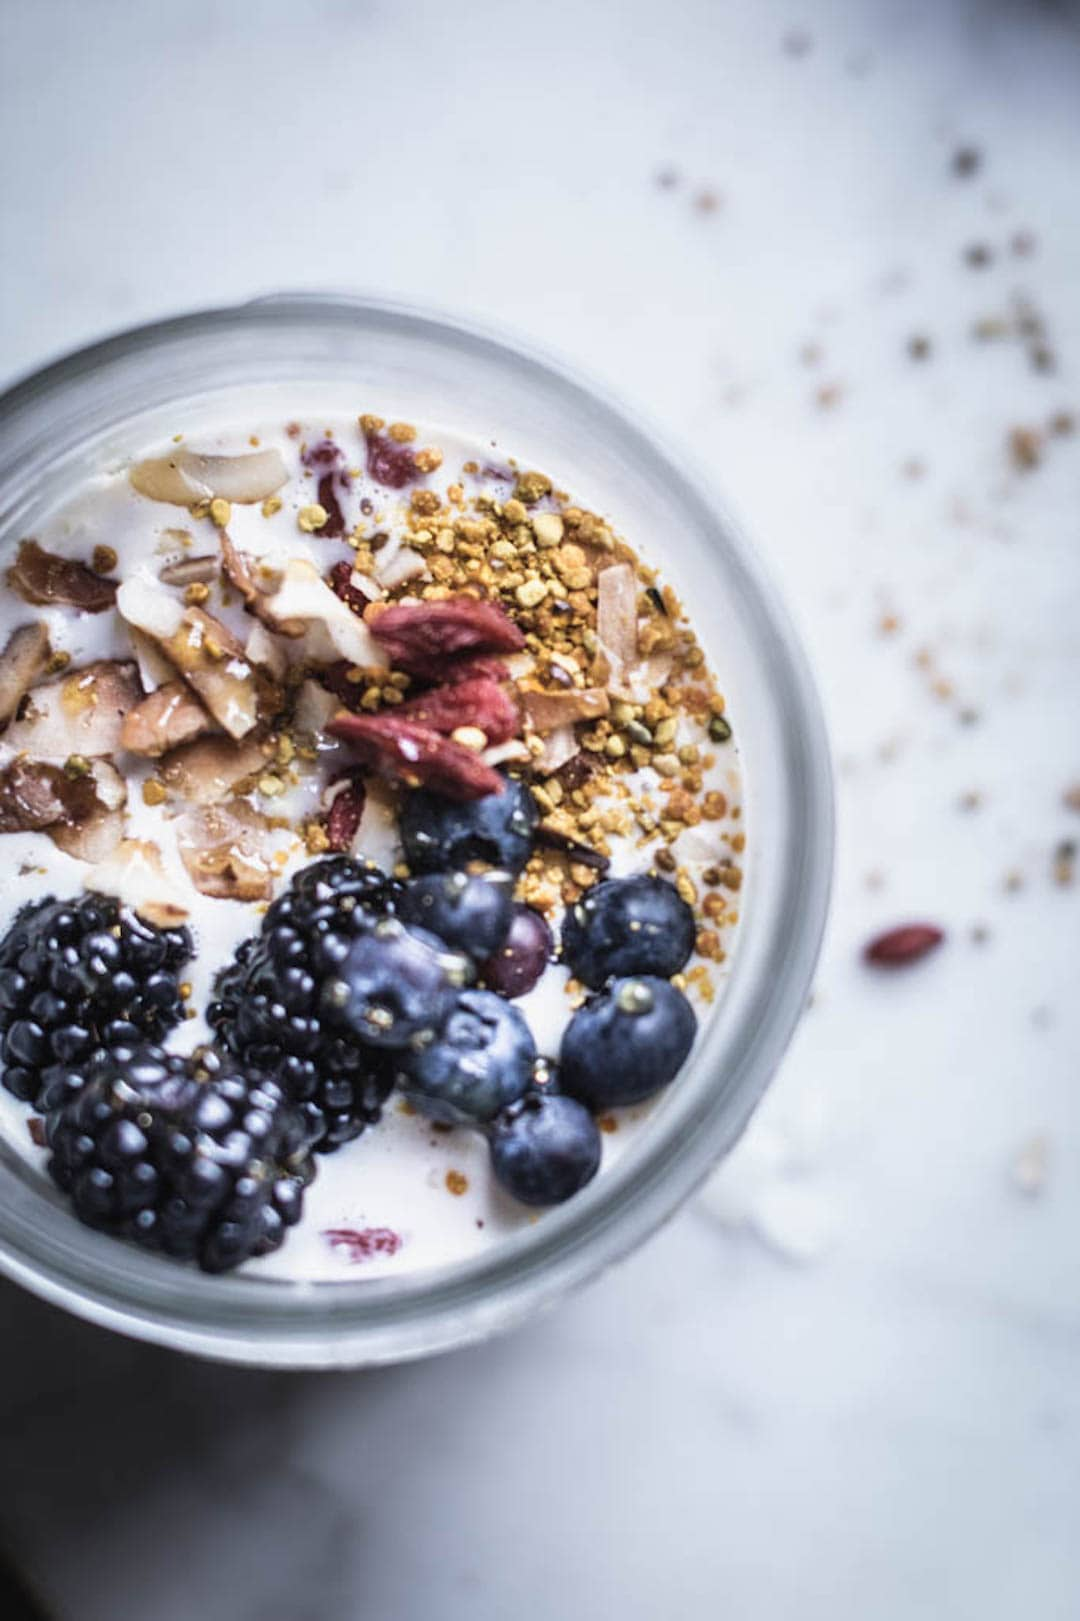 Overnight oats topped with berries and bee pollen